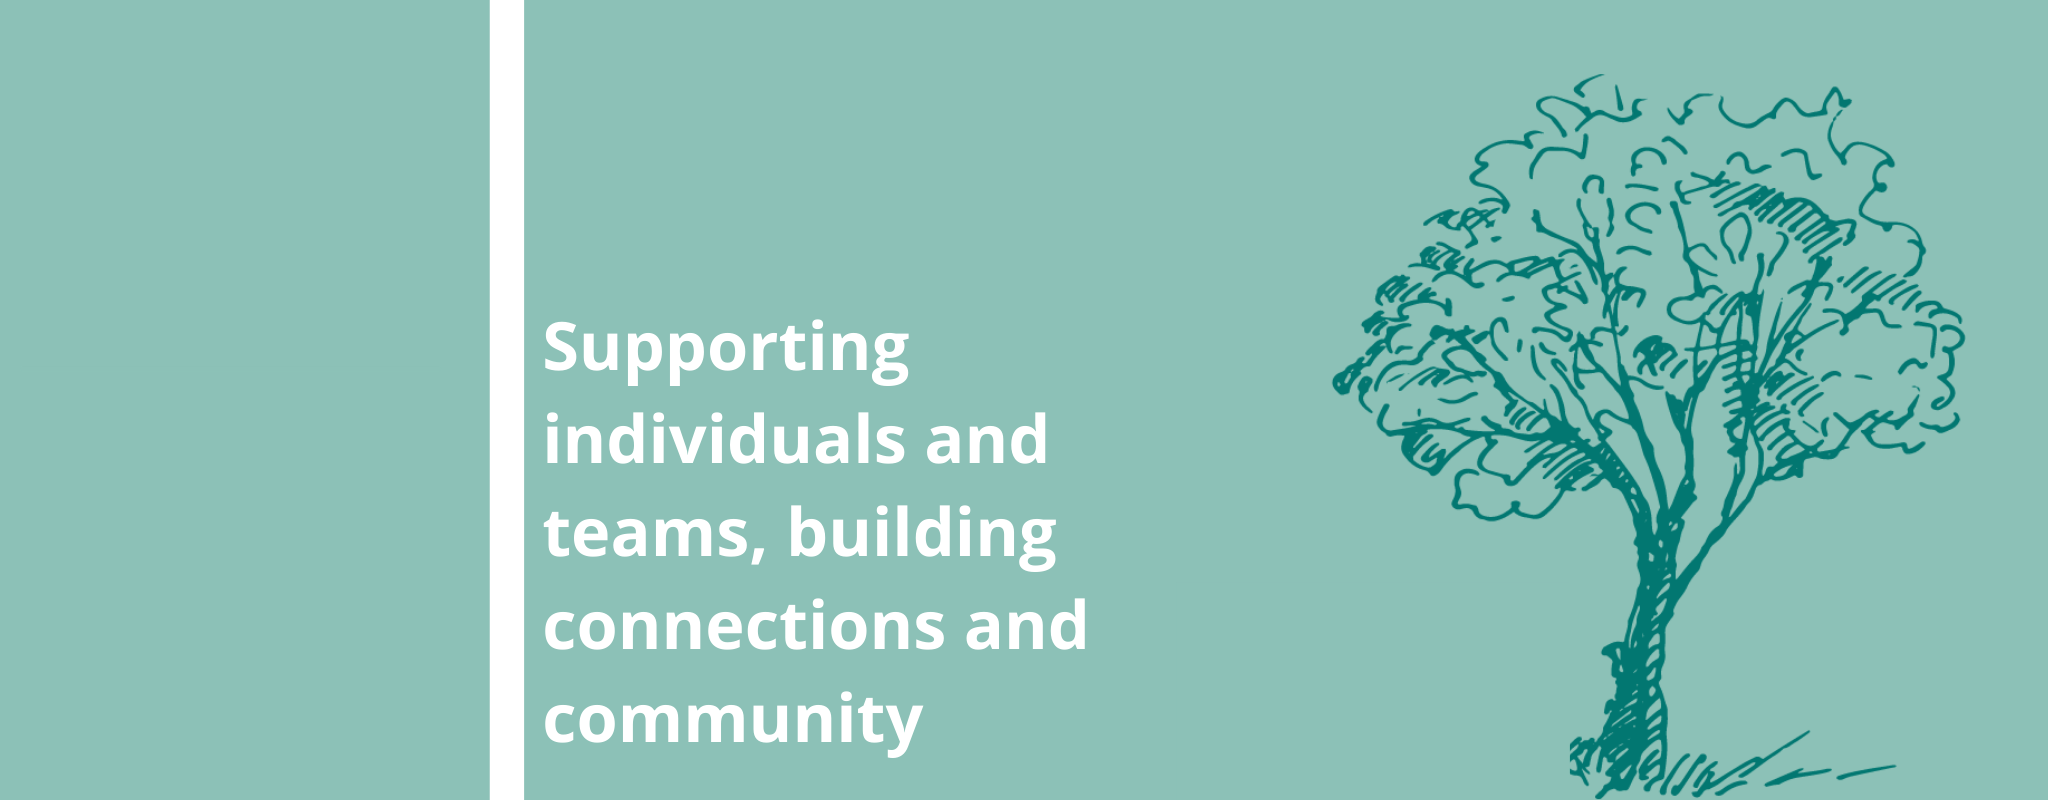 Supporting individuals and teams, building connections and community